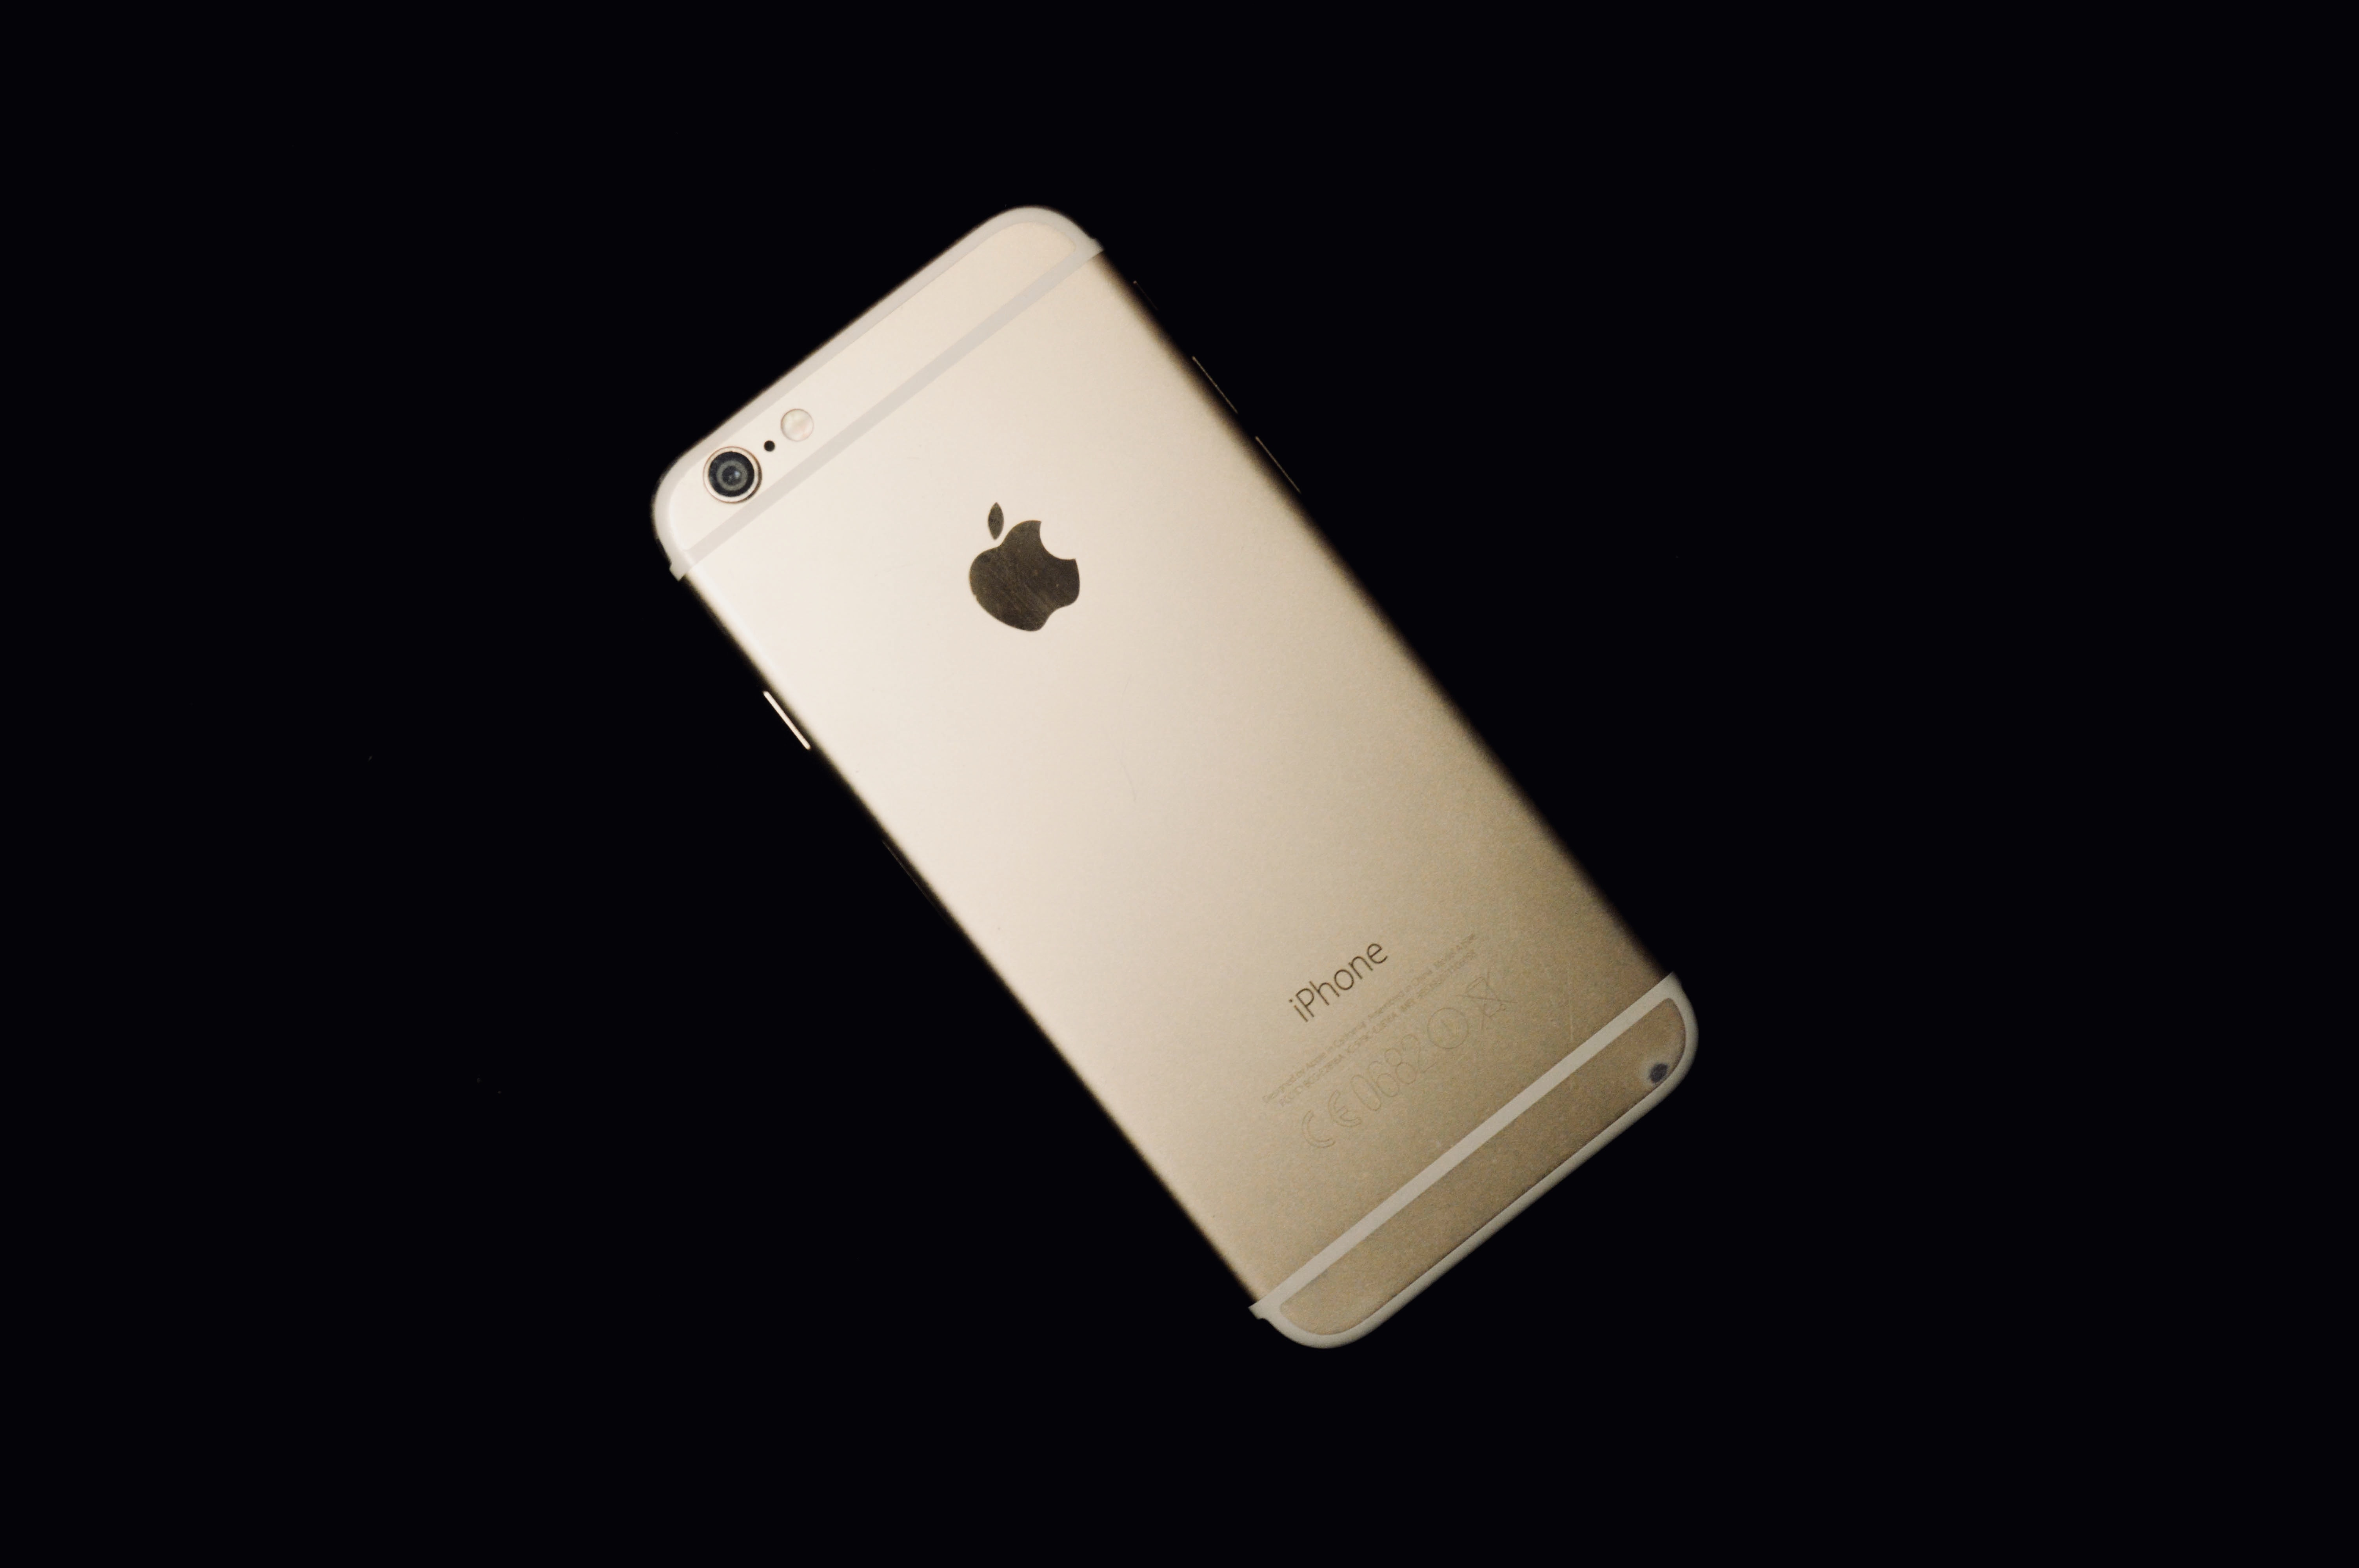 【SOLD OUT】中古BからCグレードのiPhone6を大量入荷致しました。